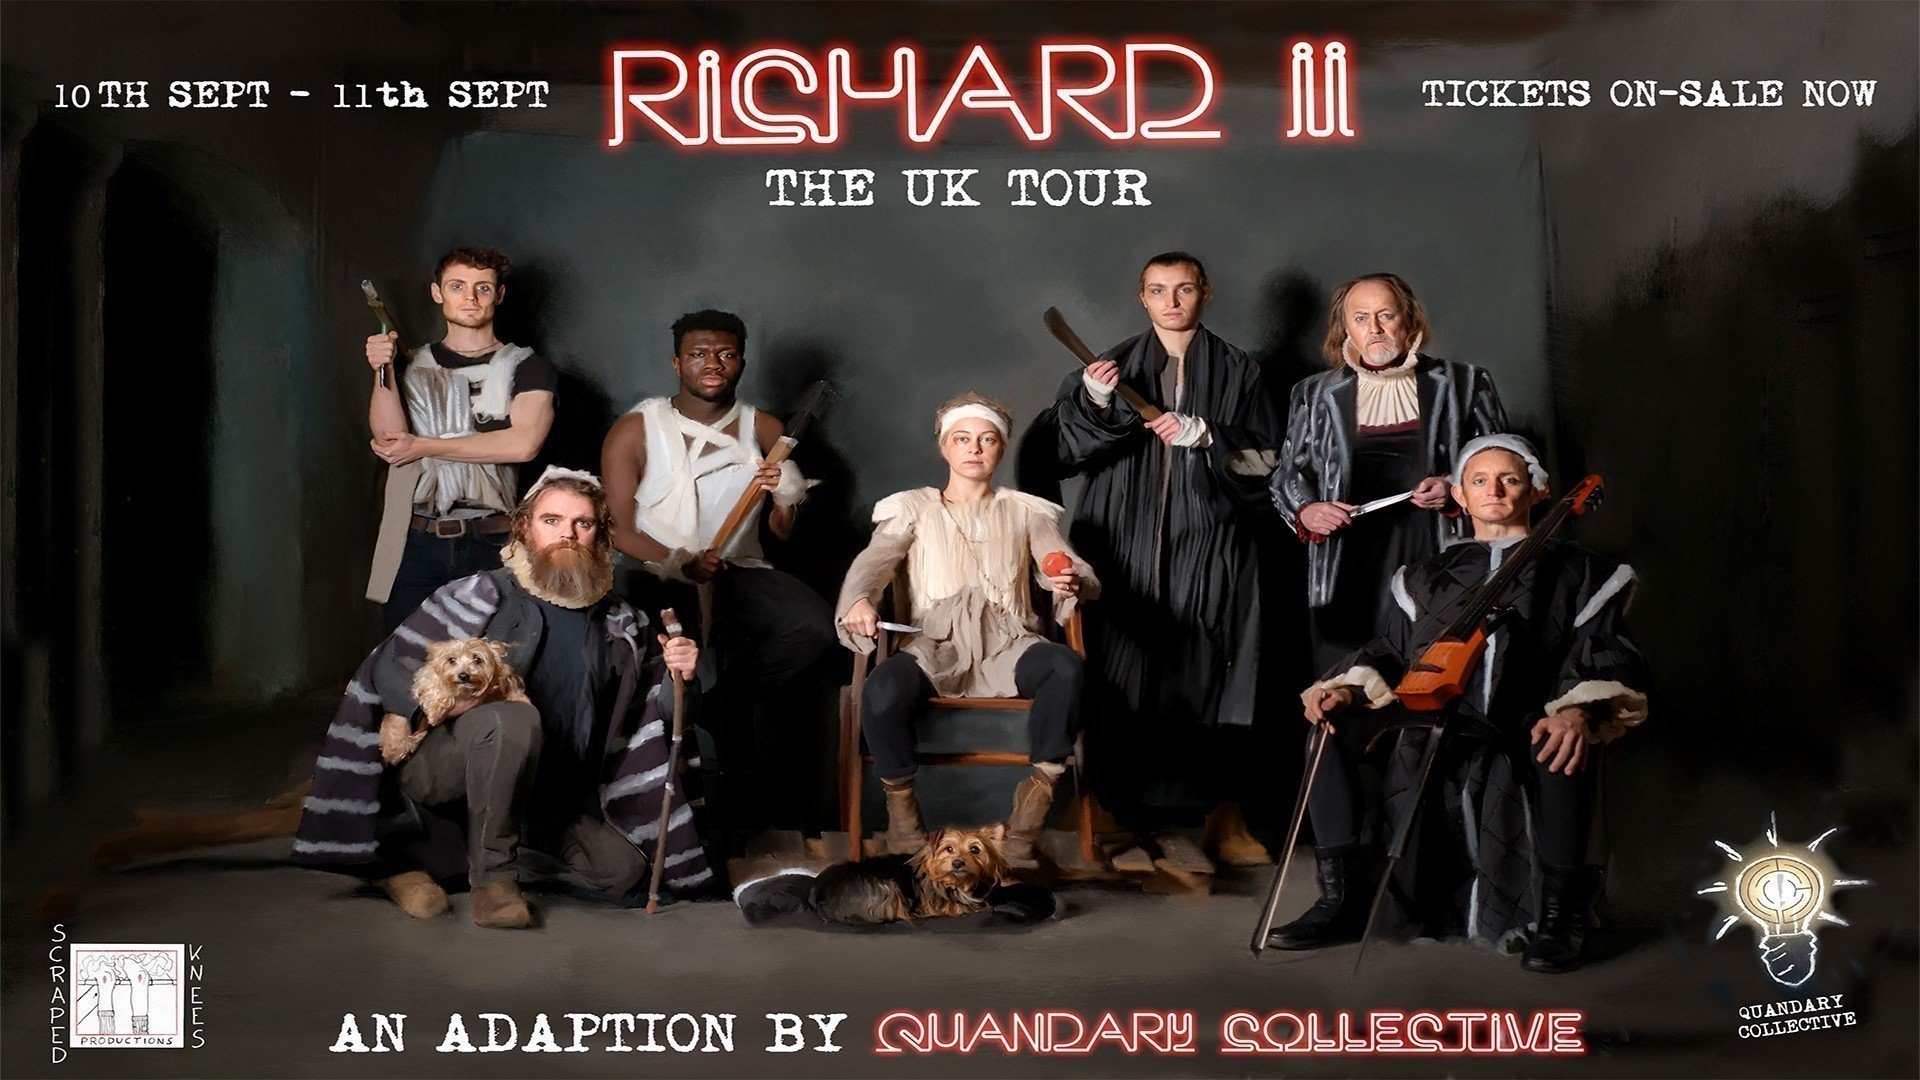 Quandary Collective's Richard II Visiting major UK cities including Oxfordshire's Waterperry Gardens